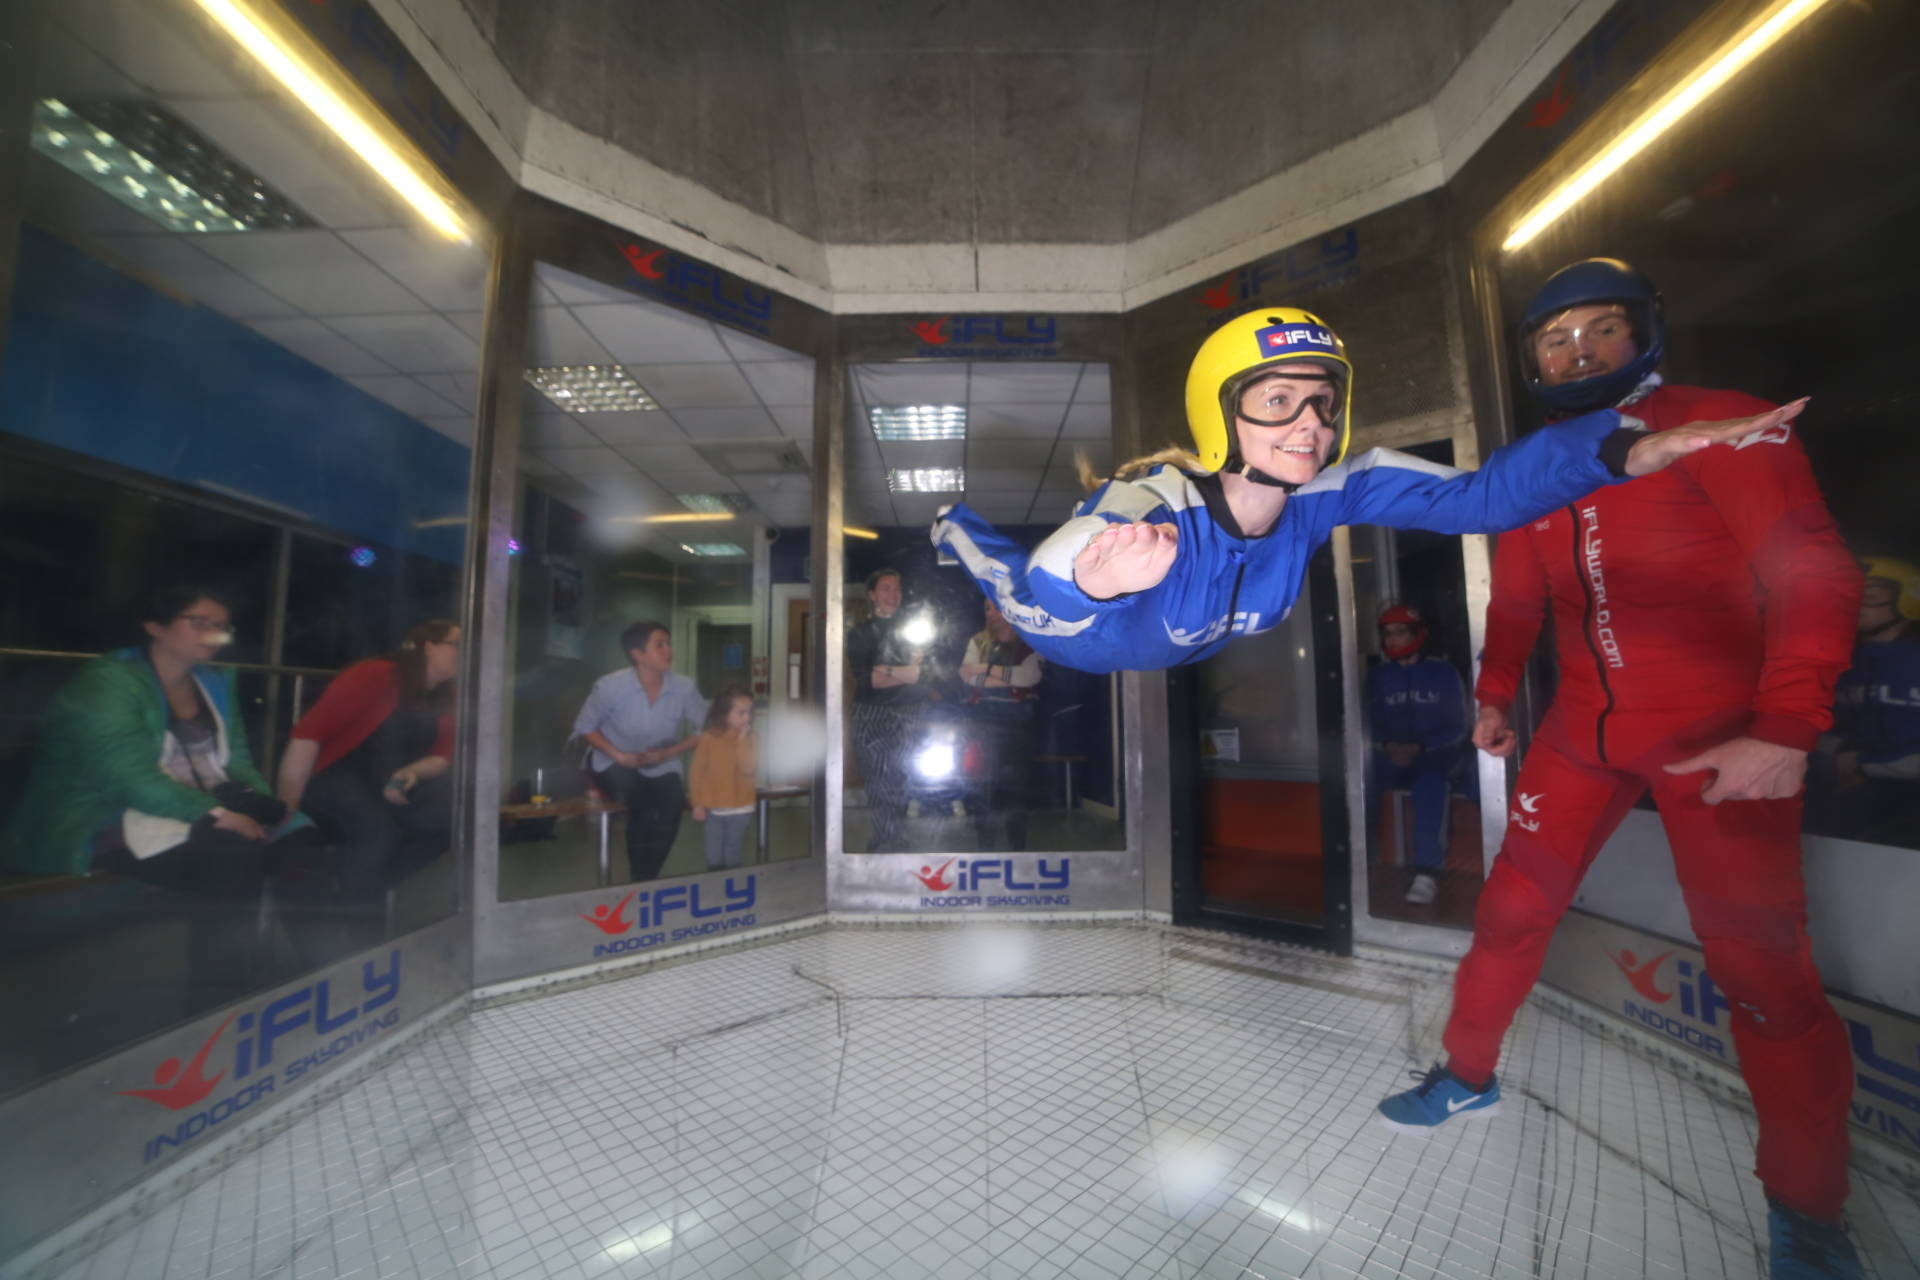 indoor skydiving at iFly with red letter days